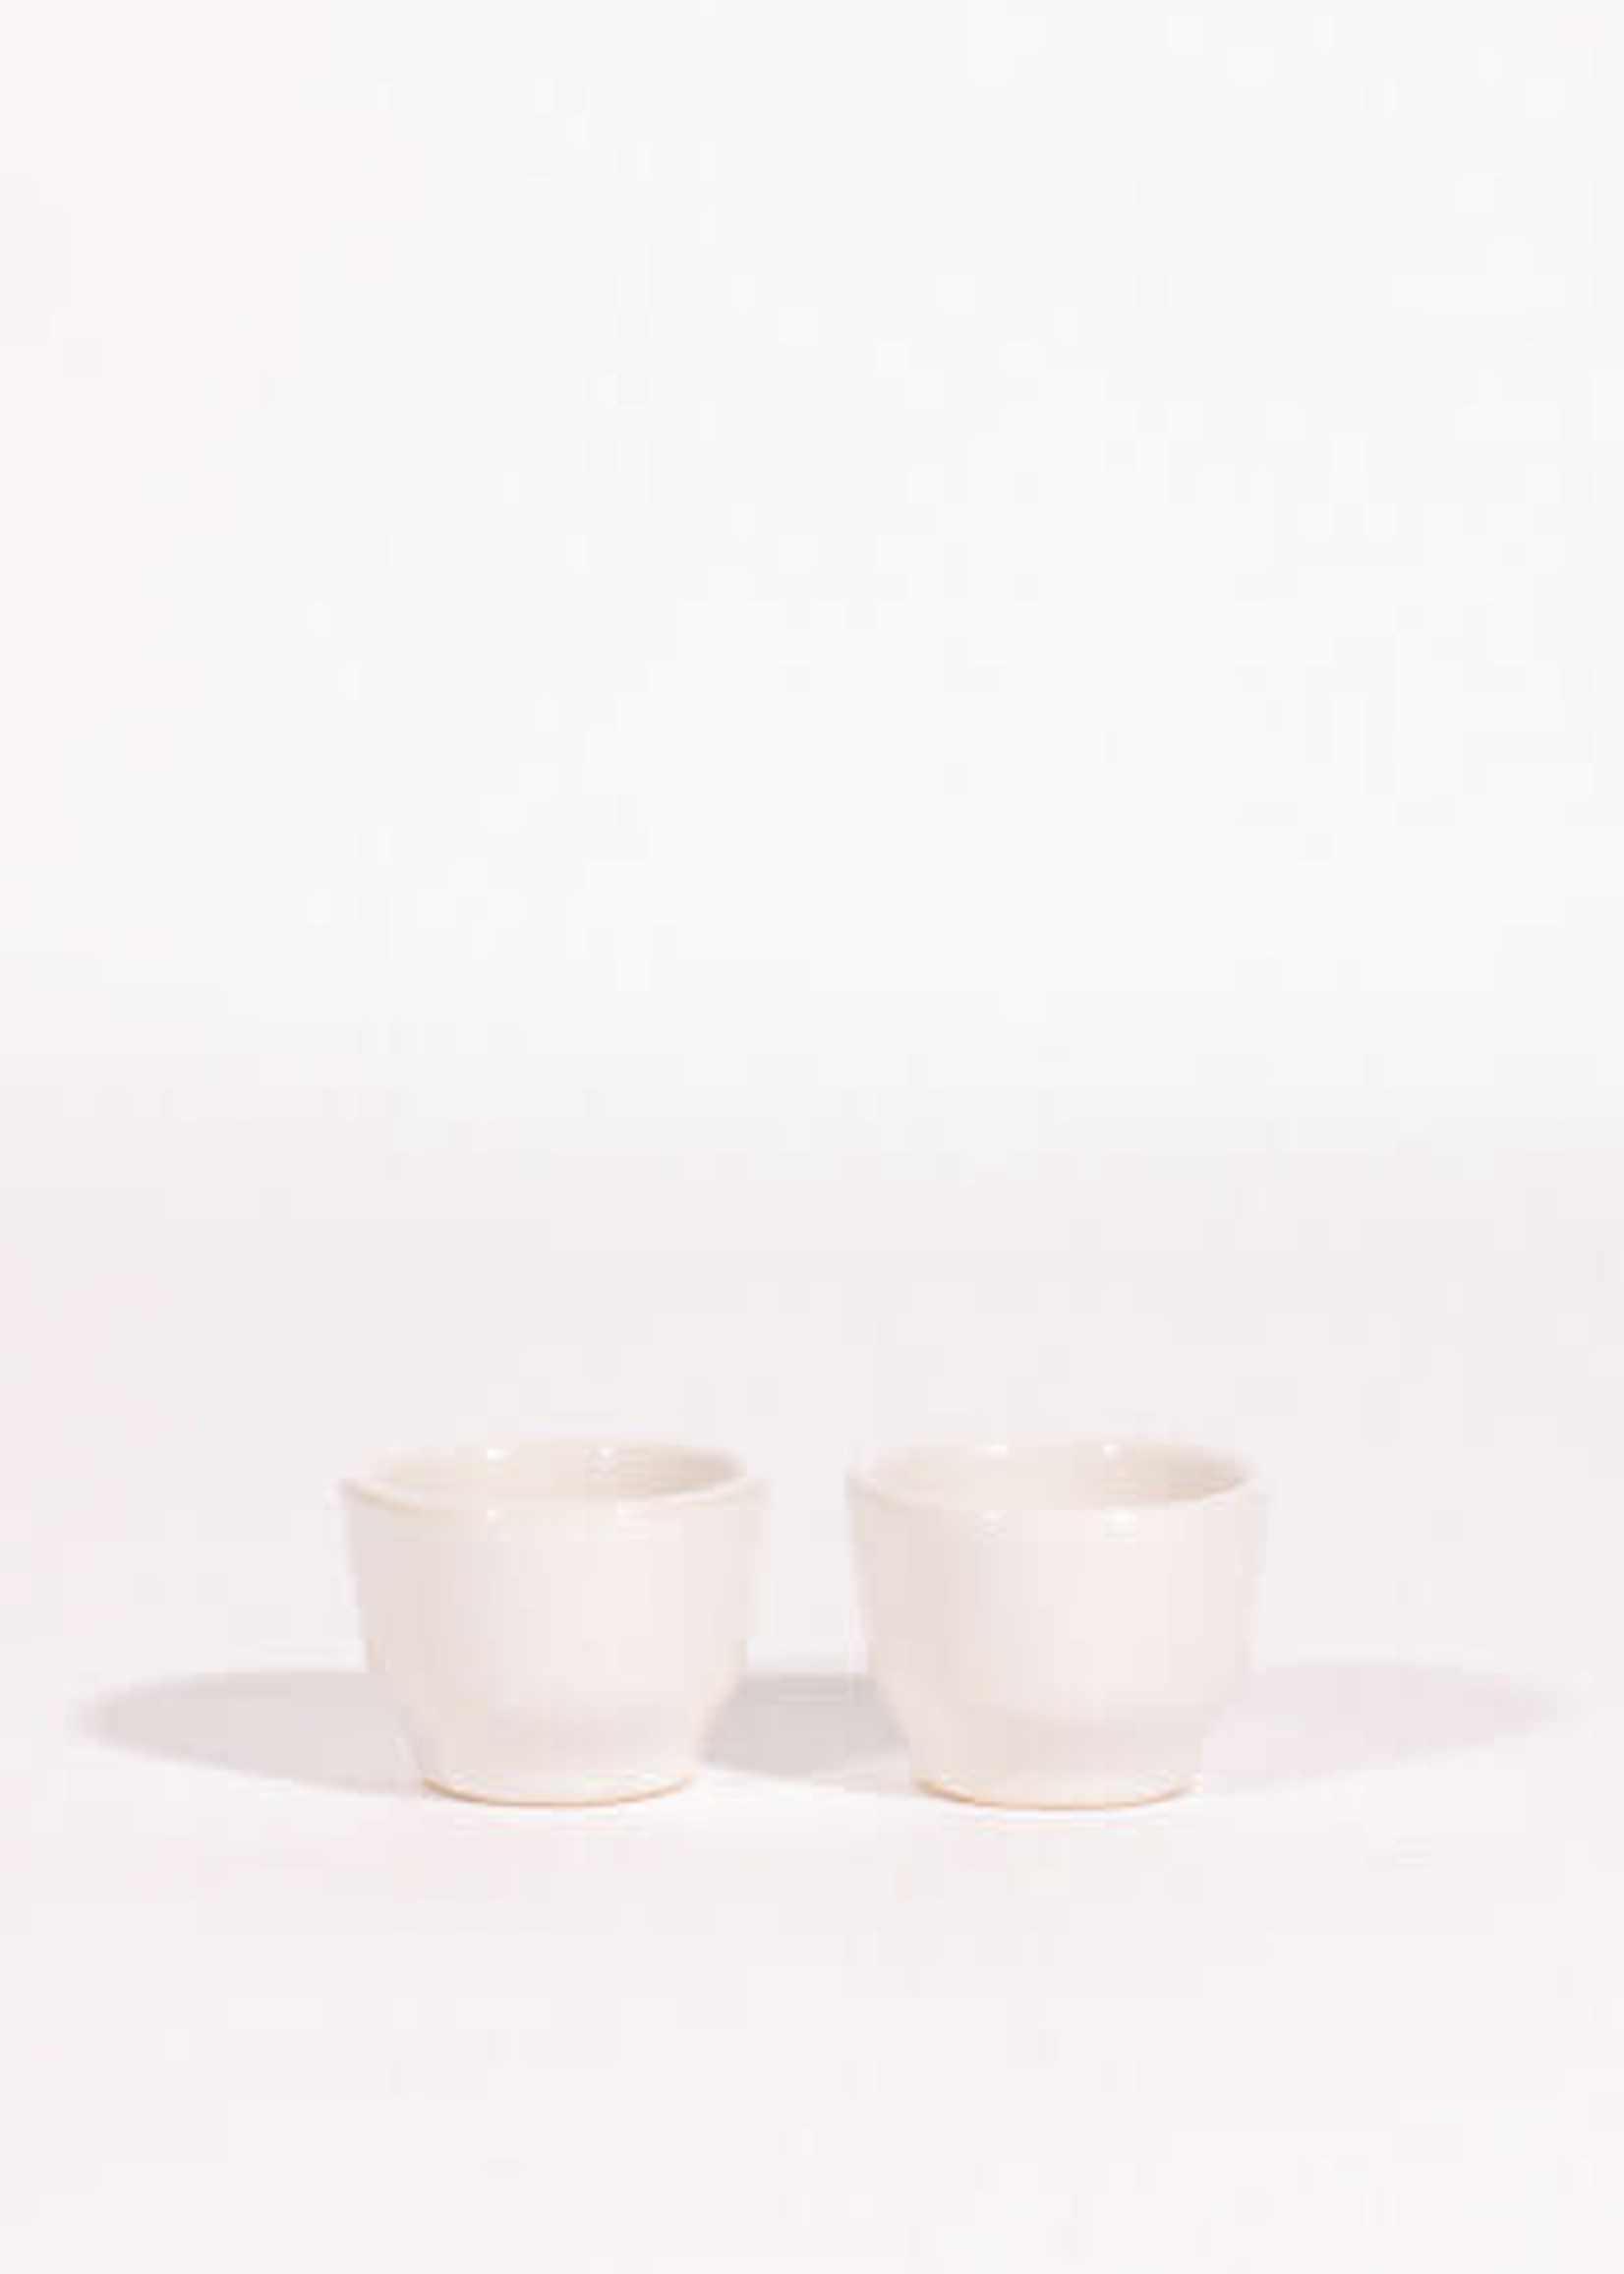 Lagos Del Mundo White Ceramic Shot Glasses